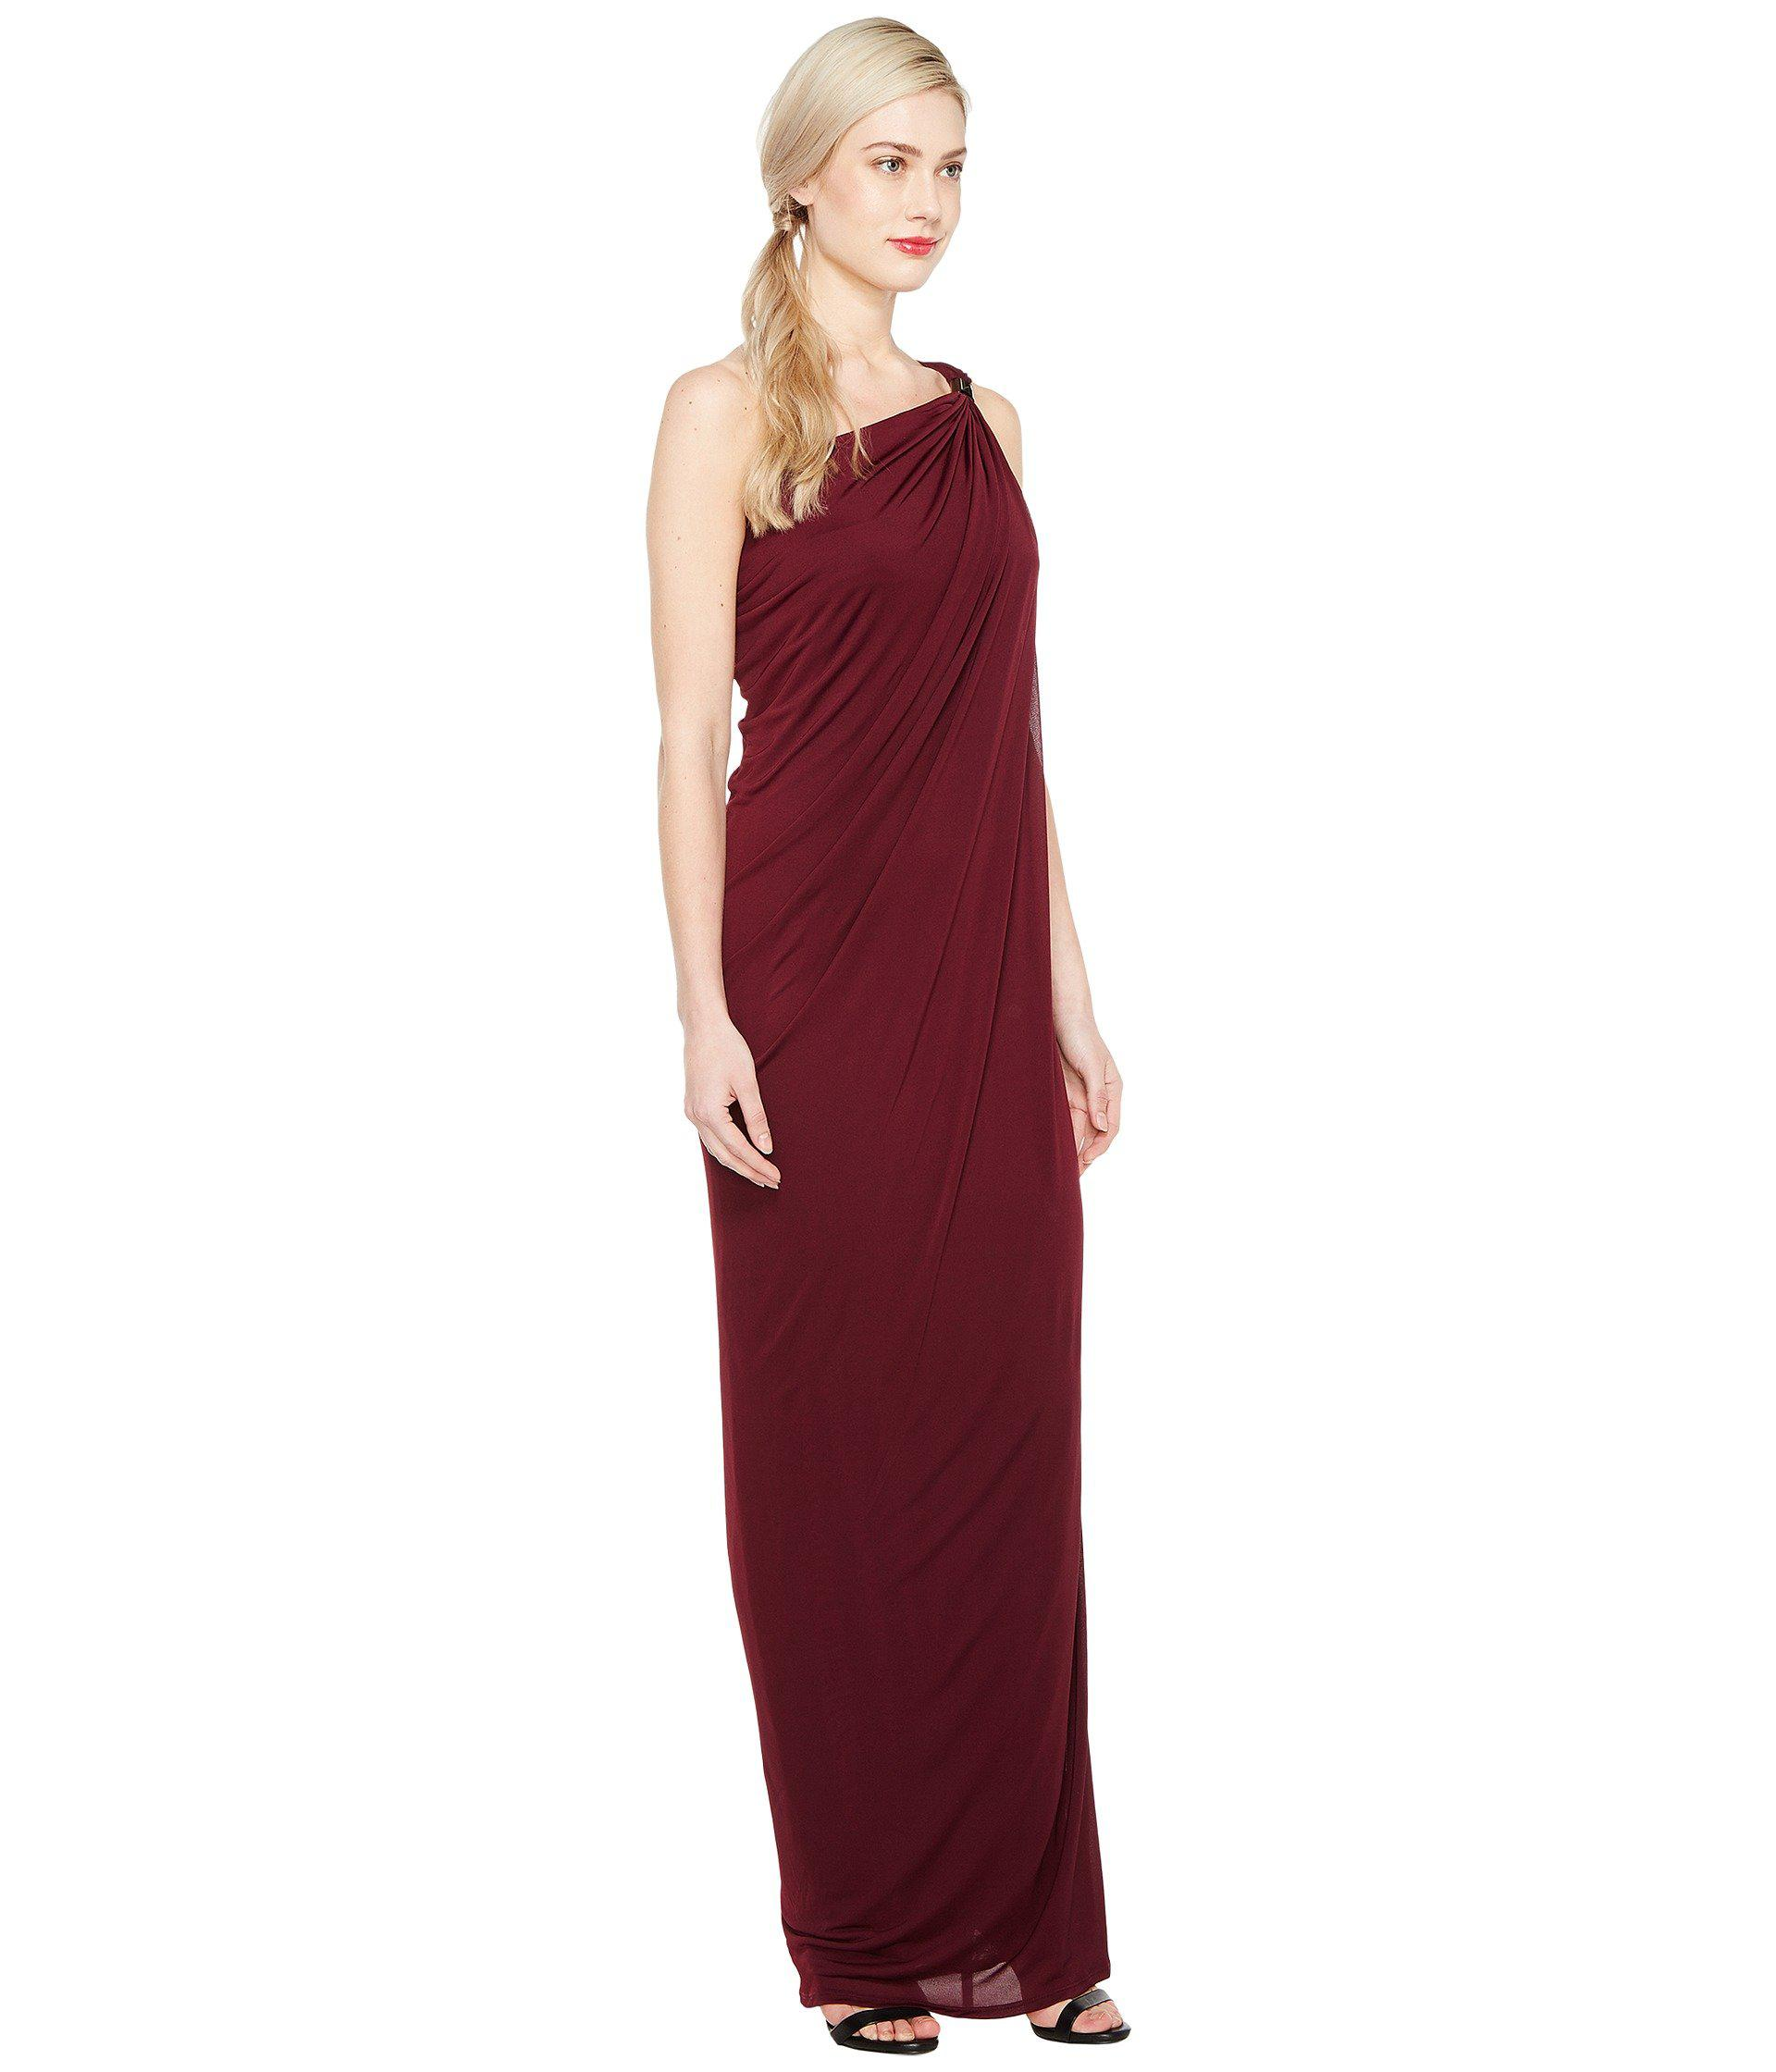 37b73ef5e6a Lyst - Halston One Shoulder Draped Jersey Gown W/ Slit in Red